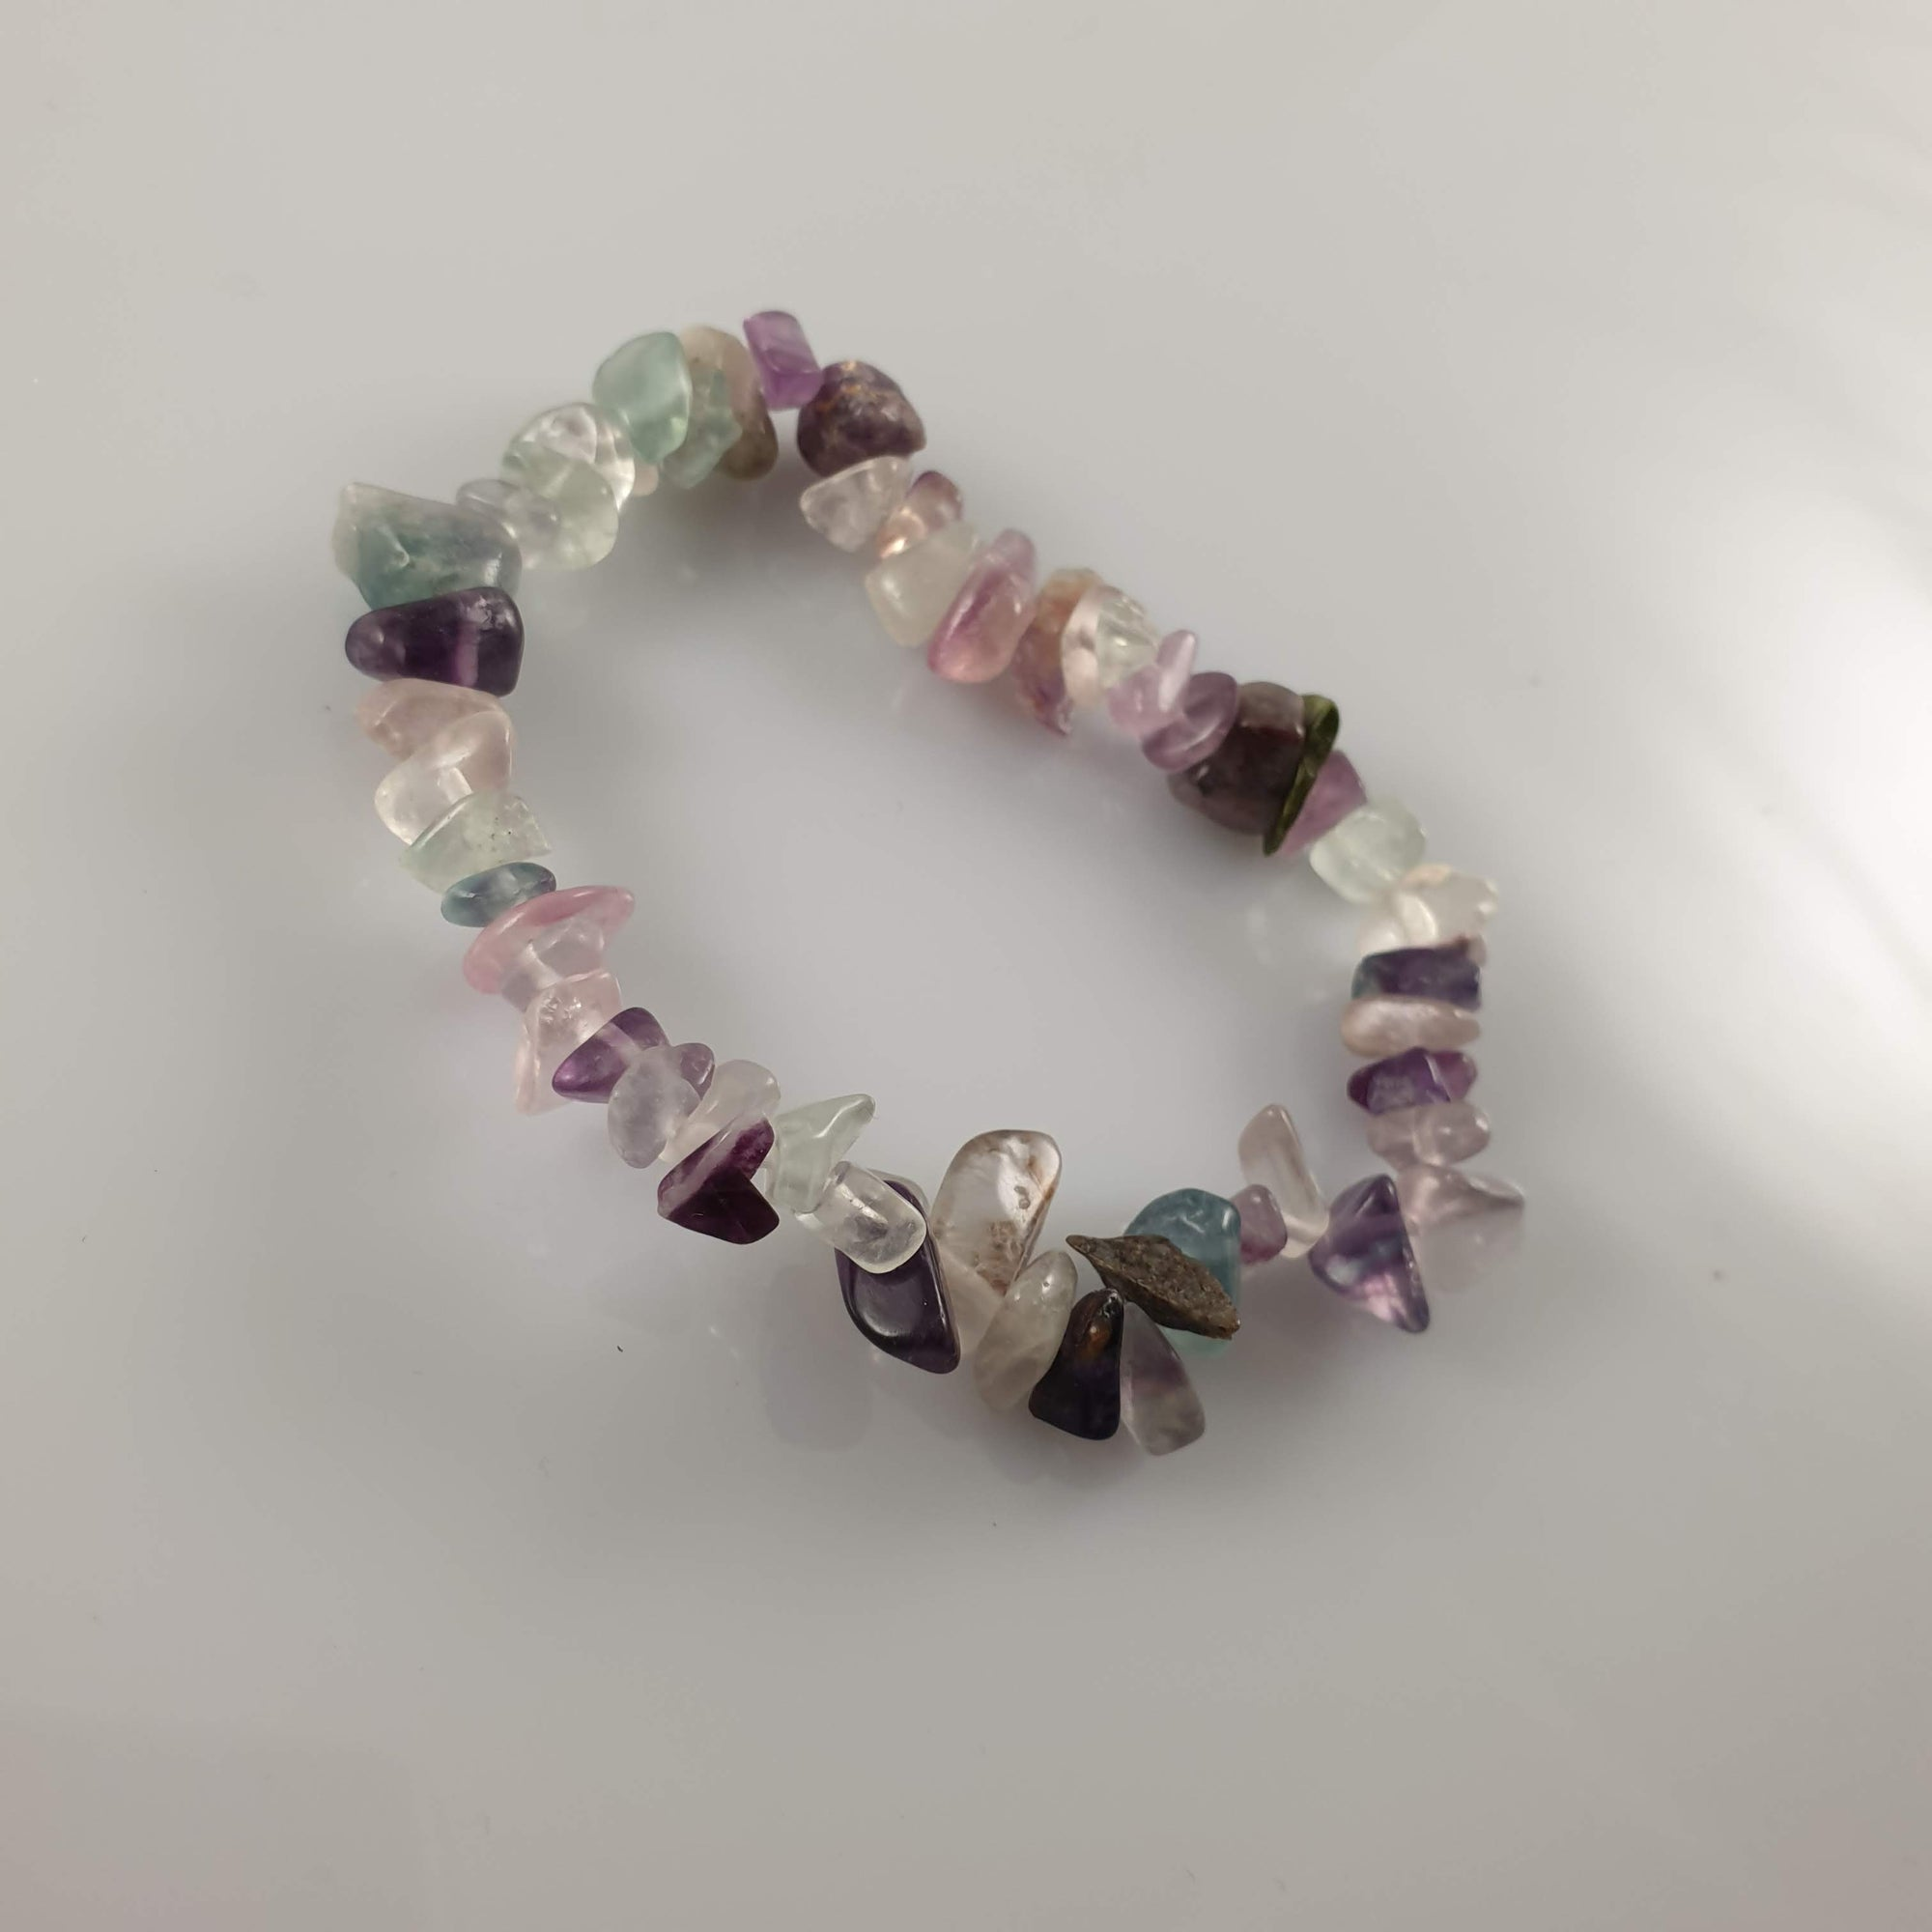 Fluorite Chip Crystal Bracelet - Rivendell Shop NZ